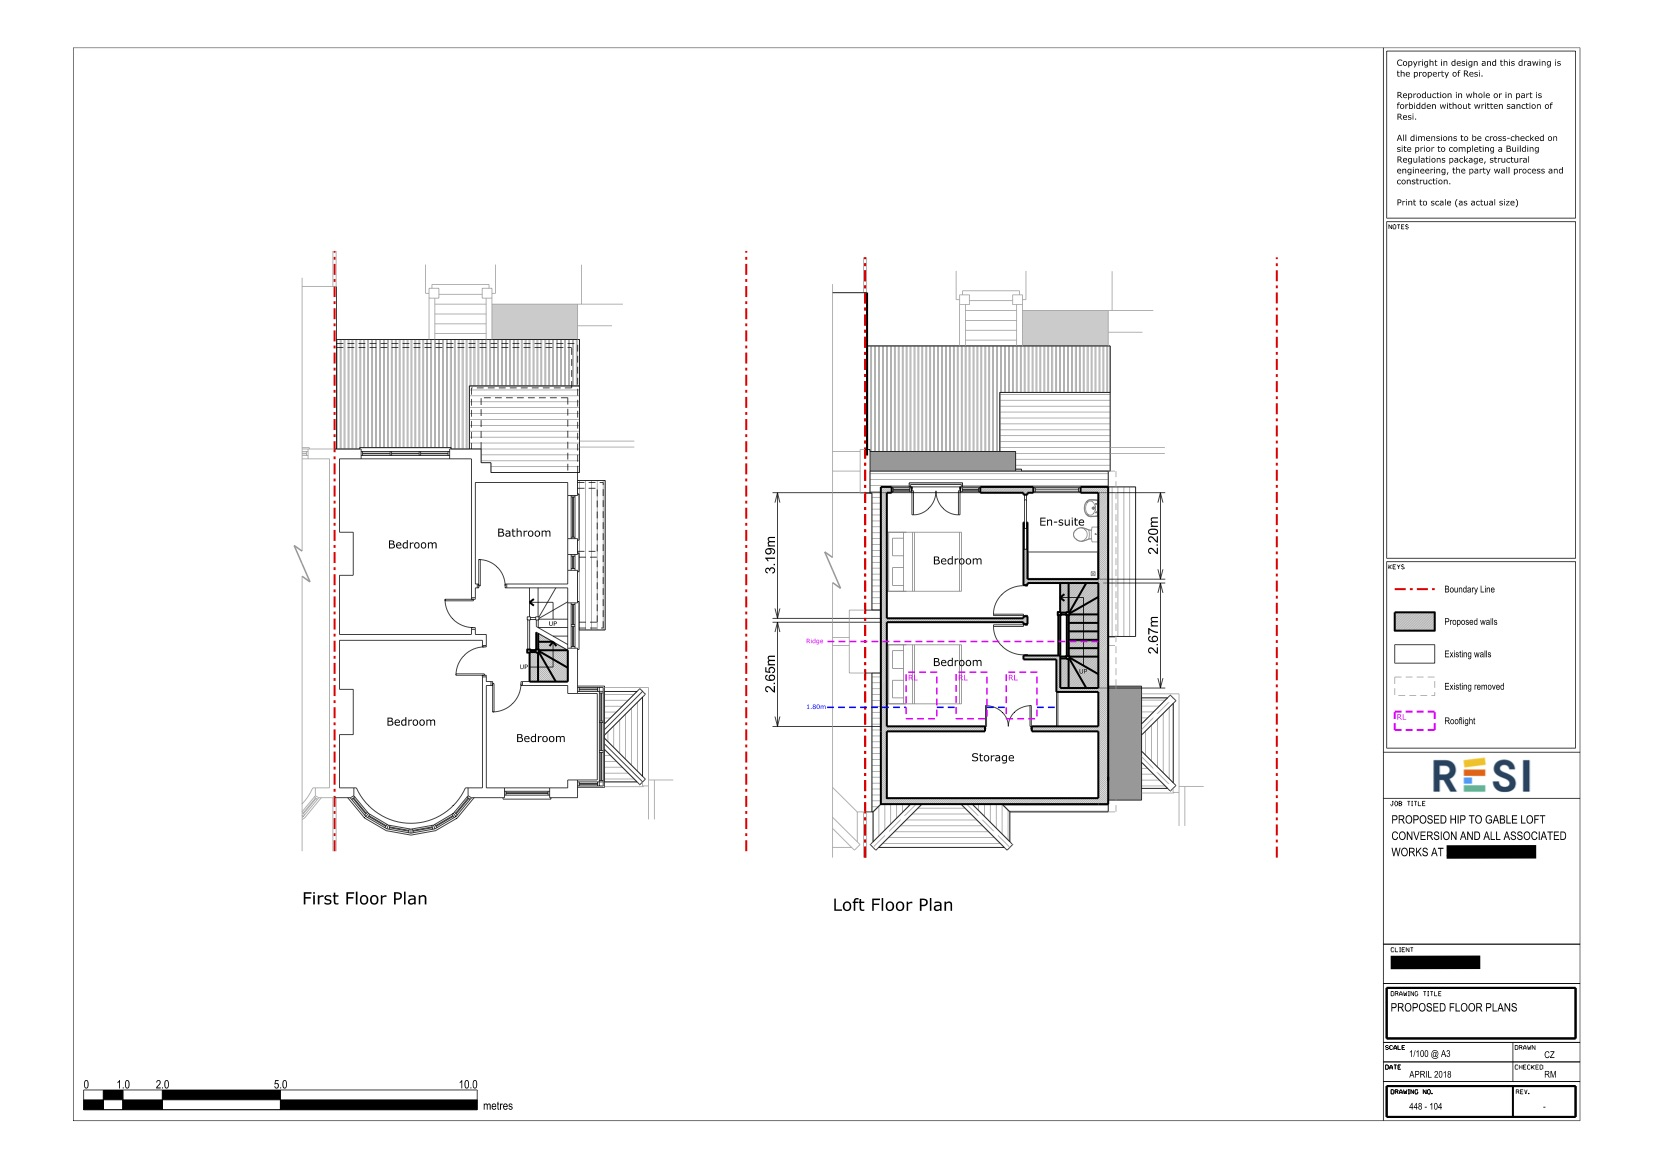 Architectural drawings   loft floor plans